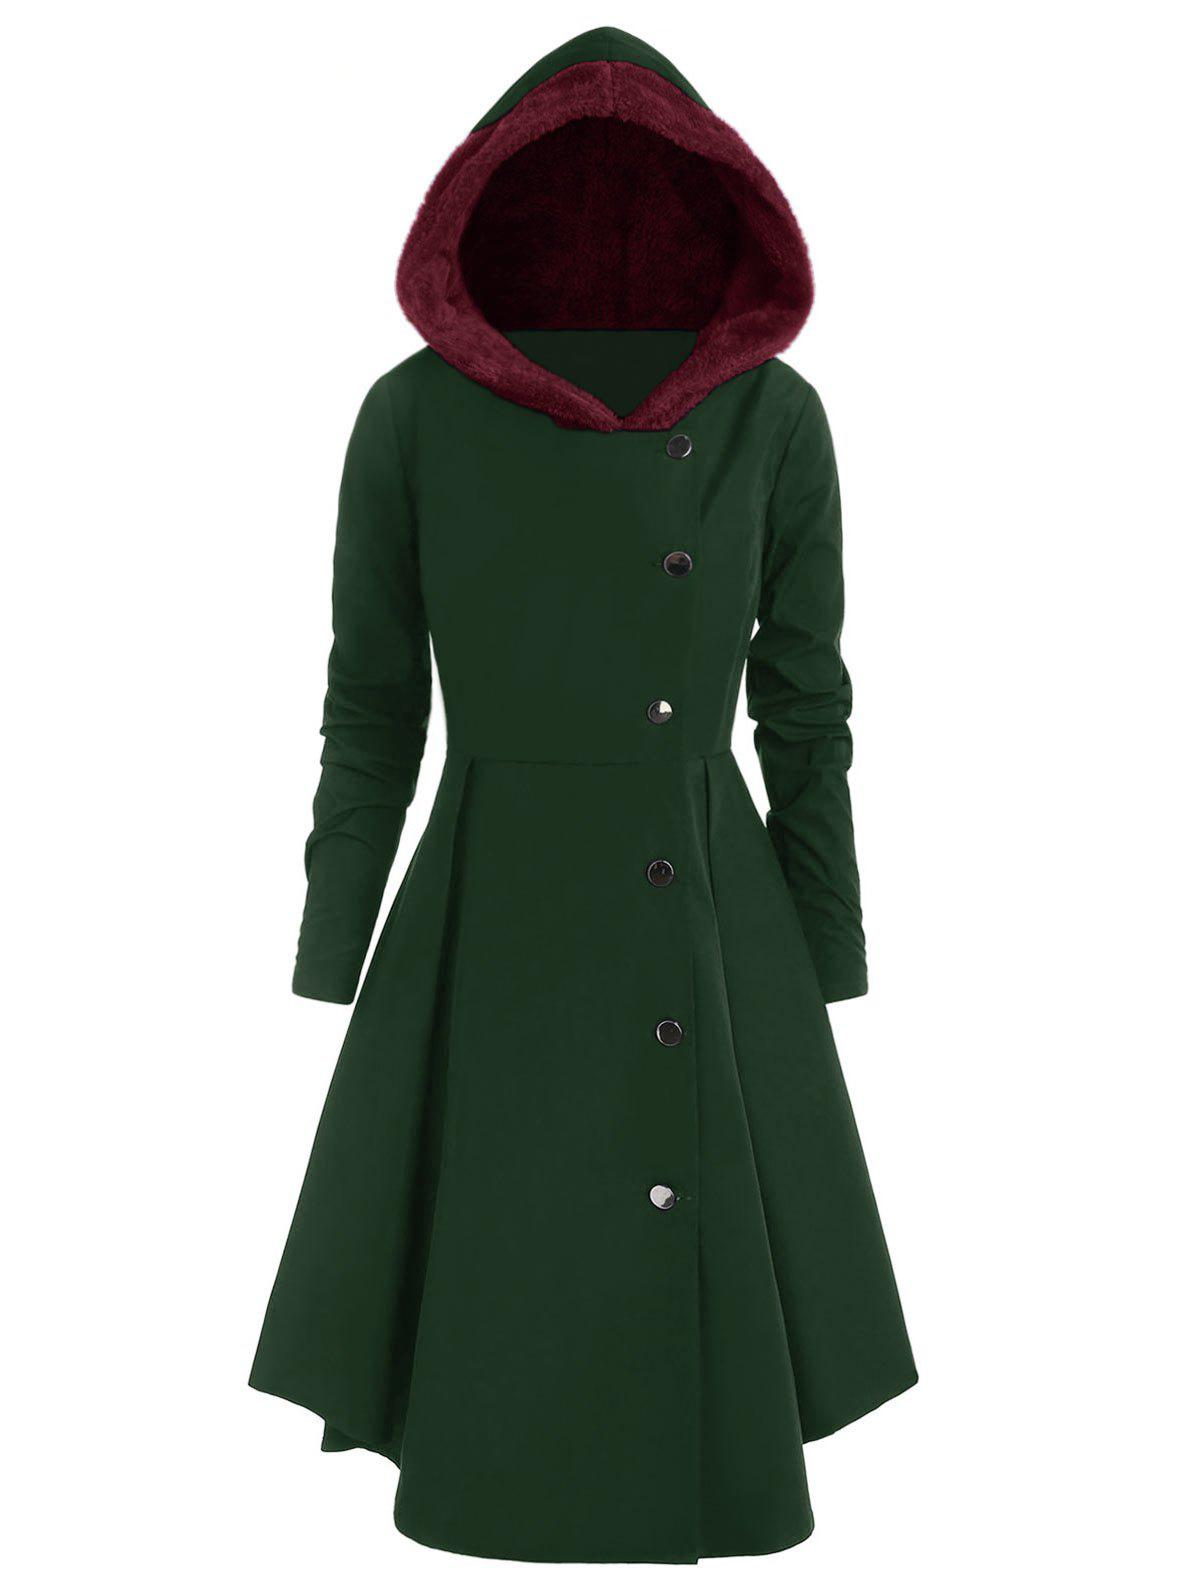 Plus Size Asymmetric Contrast Hooded Skirted Coat - DARK GREEN 3X